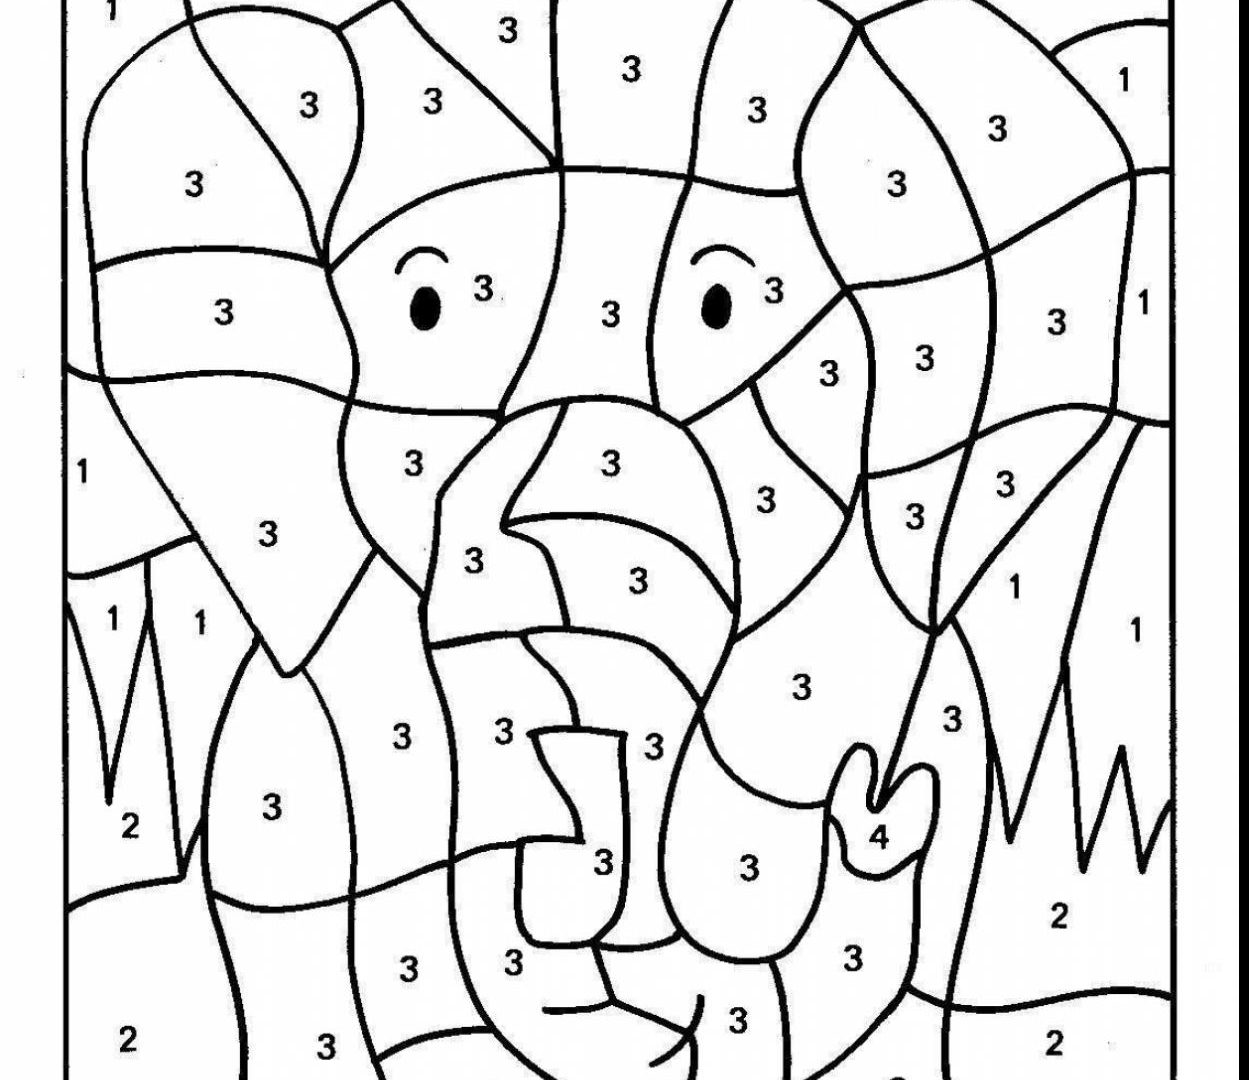 1249x1080 Free Coloring Pages Printable Fun Math For Middle School